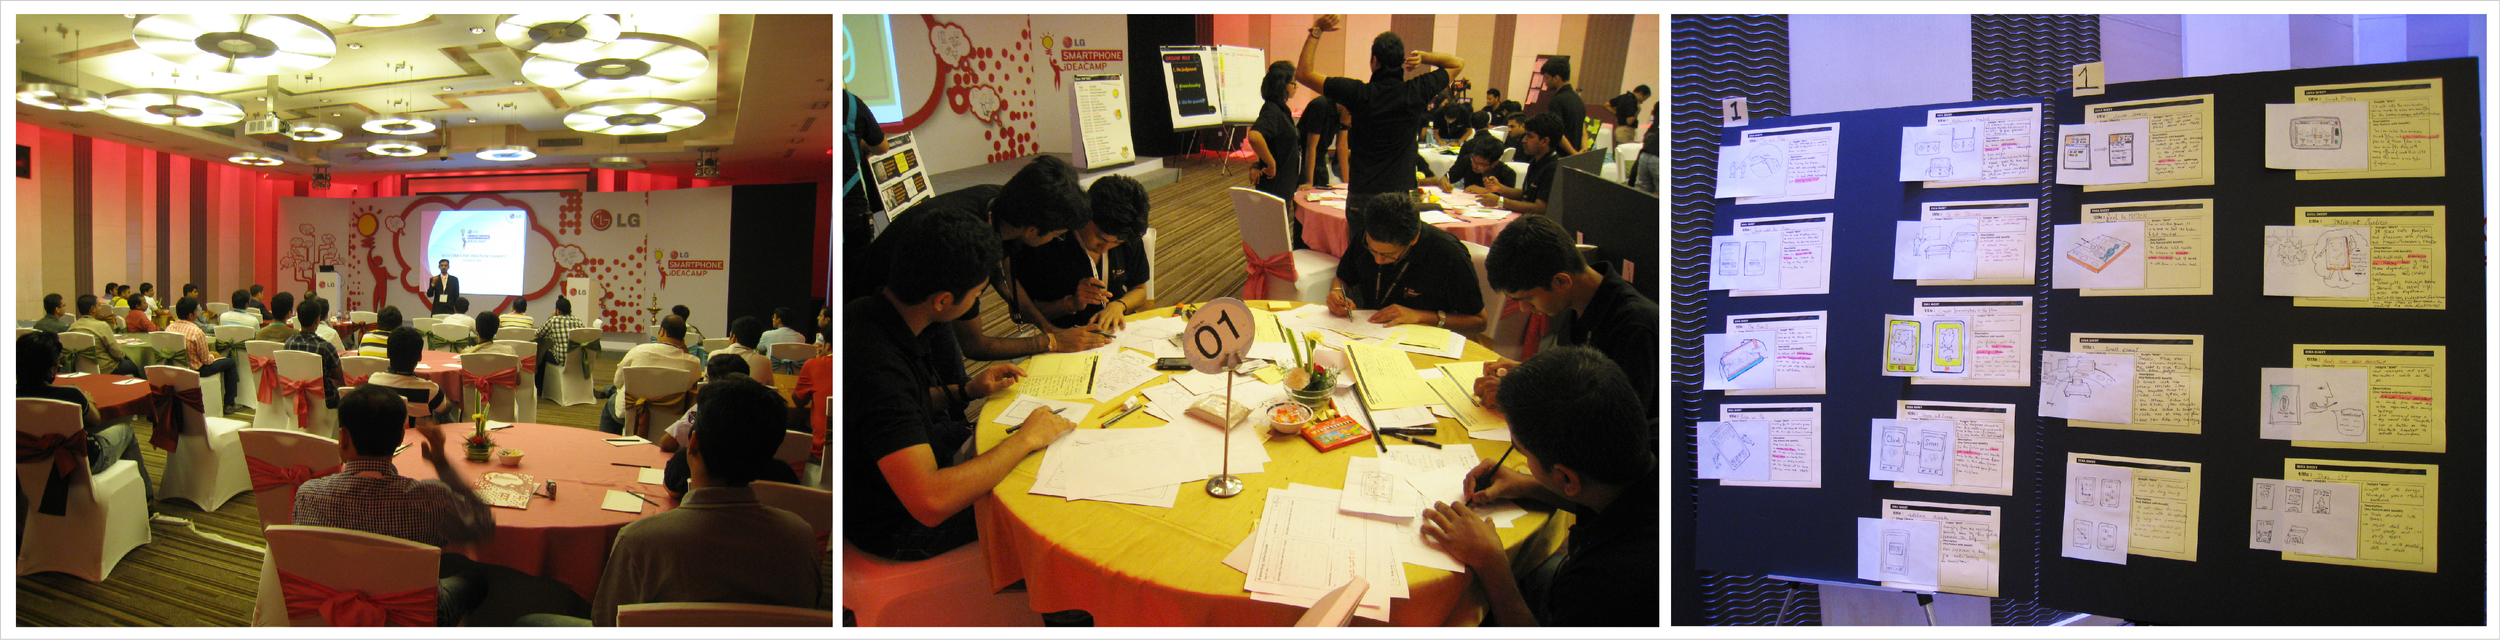 Snapshots from an Innovation Workshop organised in New Delhi